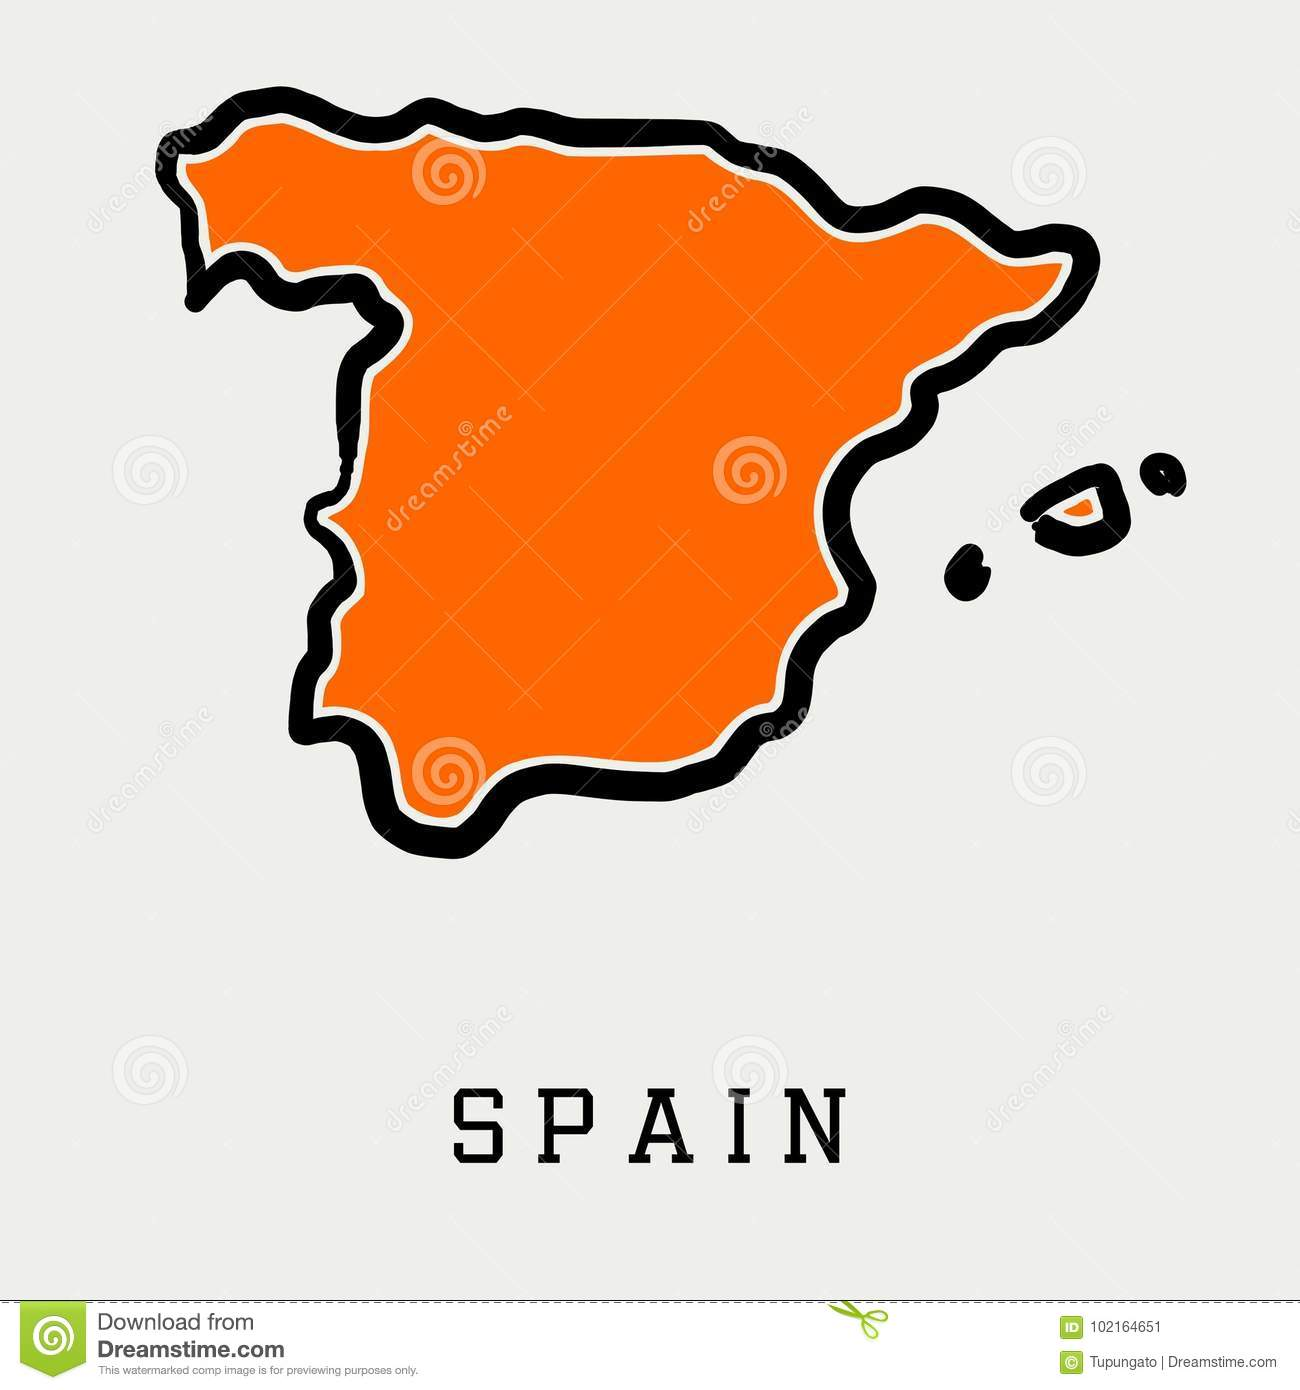 Spain Map Outline Stock Vector Illustration Of State 102164651